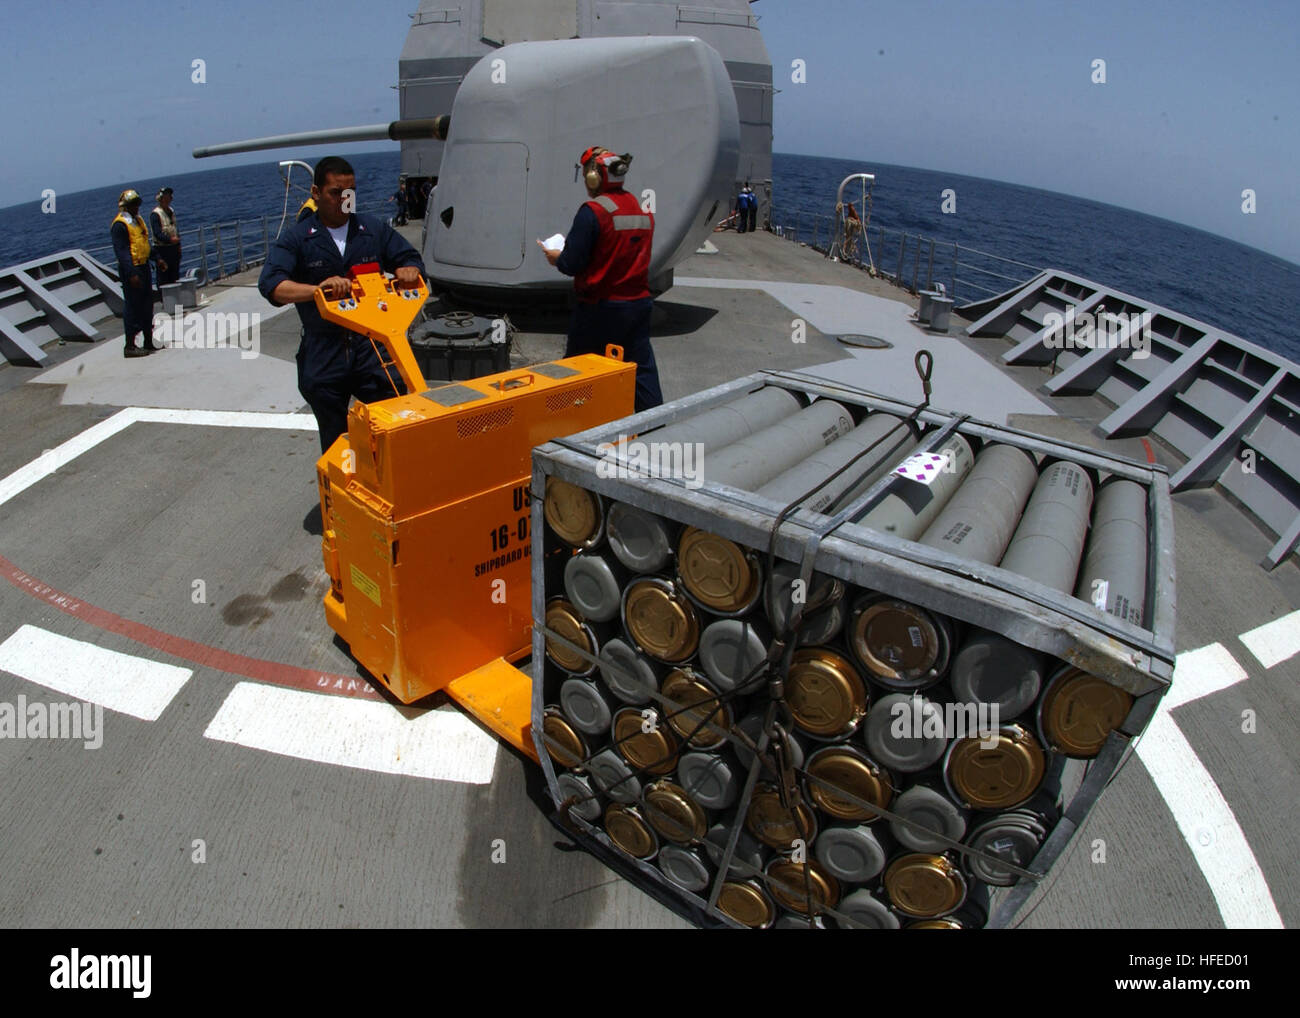 050514-N-5526M-009 Gulf of Aden (May 14, 2005) - Gunners Mate 2nd Class Jose Sanchez assigned to Weapons Department - Stock Image